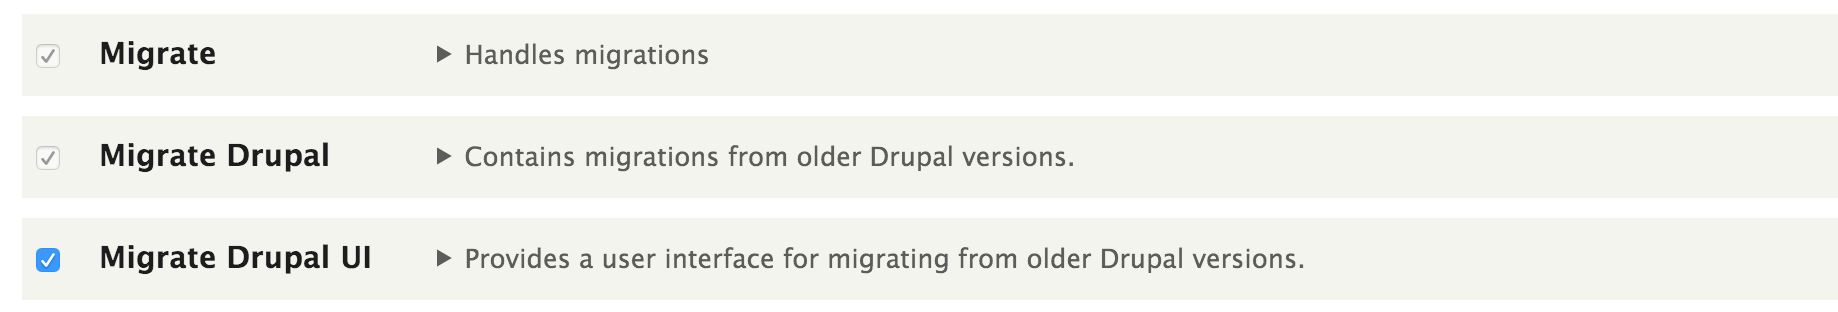 Migration related modules in Drupal 8.1.0